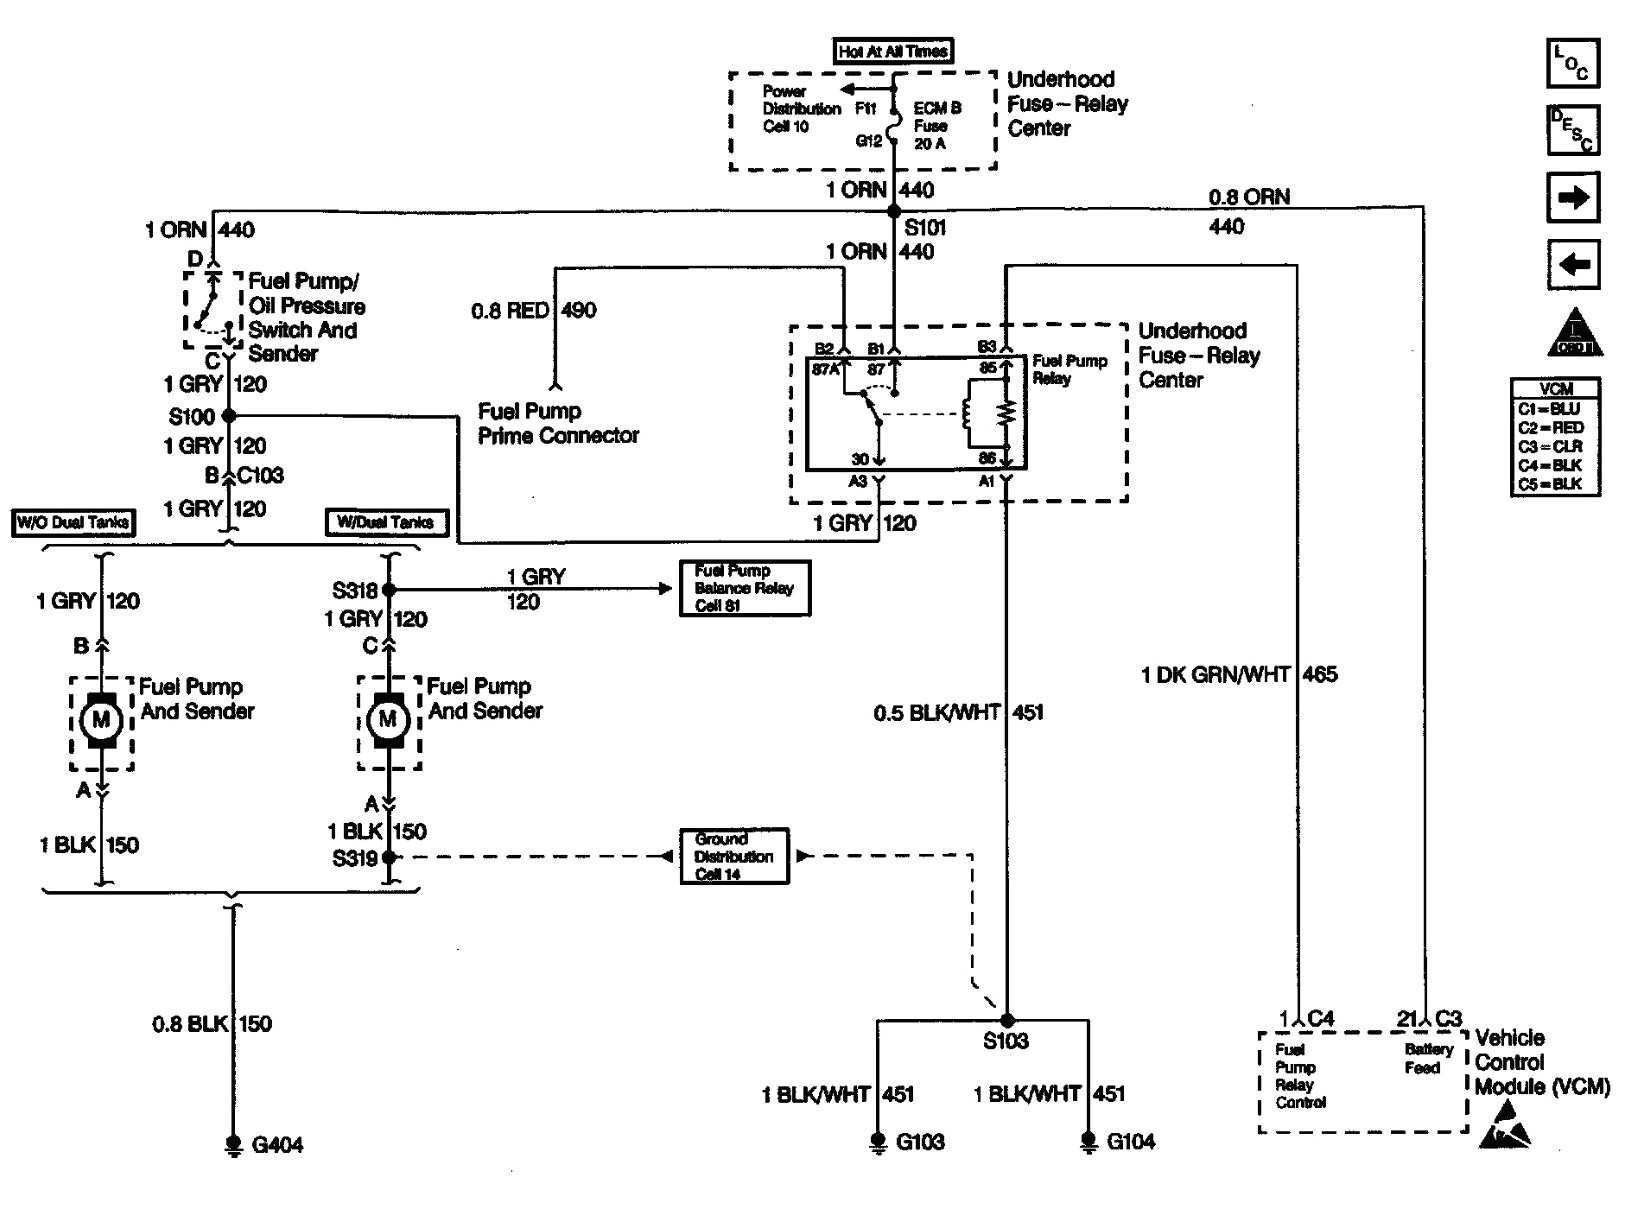 New 2004 Dodge Ram 1500 Ignition Wiring Diagram  Diagram